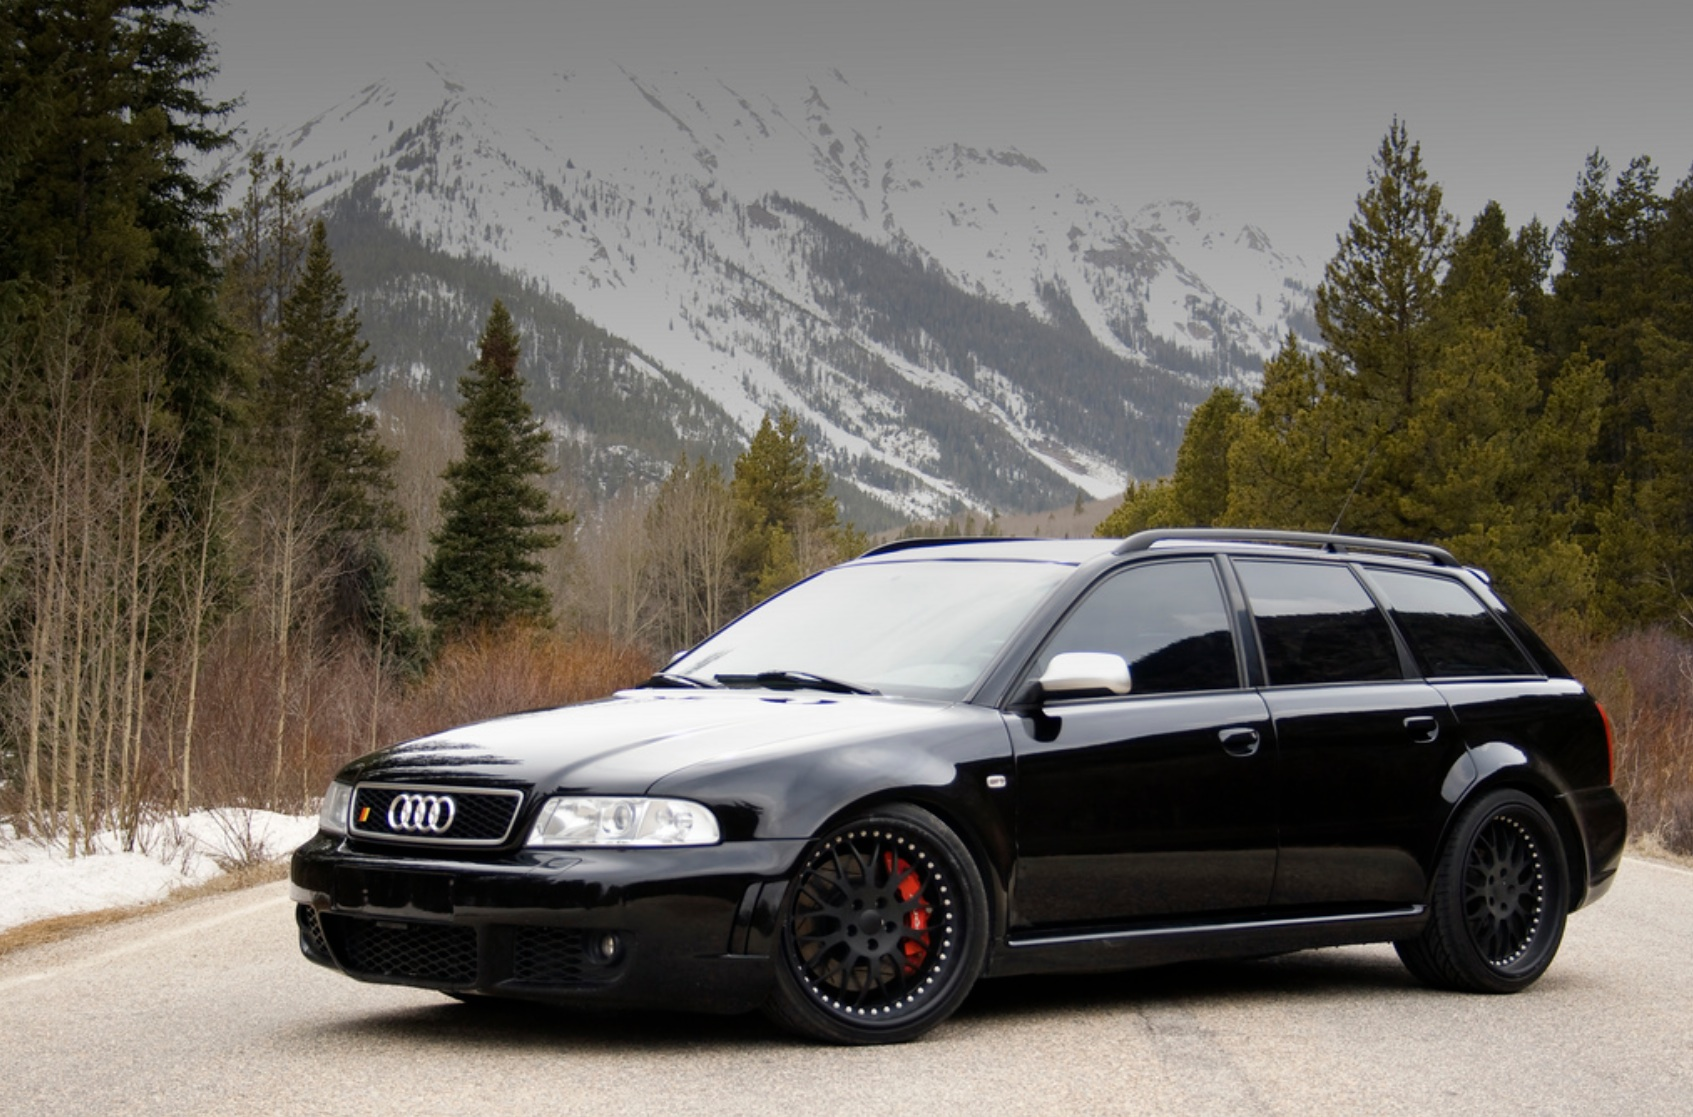 2001 Audi S4 Avant Rs4 Conversion Revisit German Cars For Sale